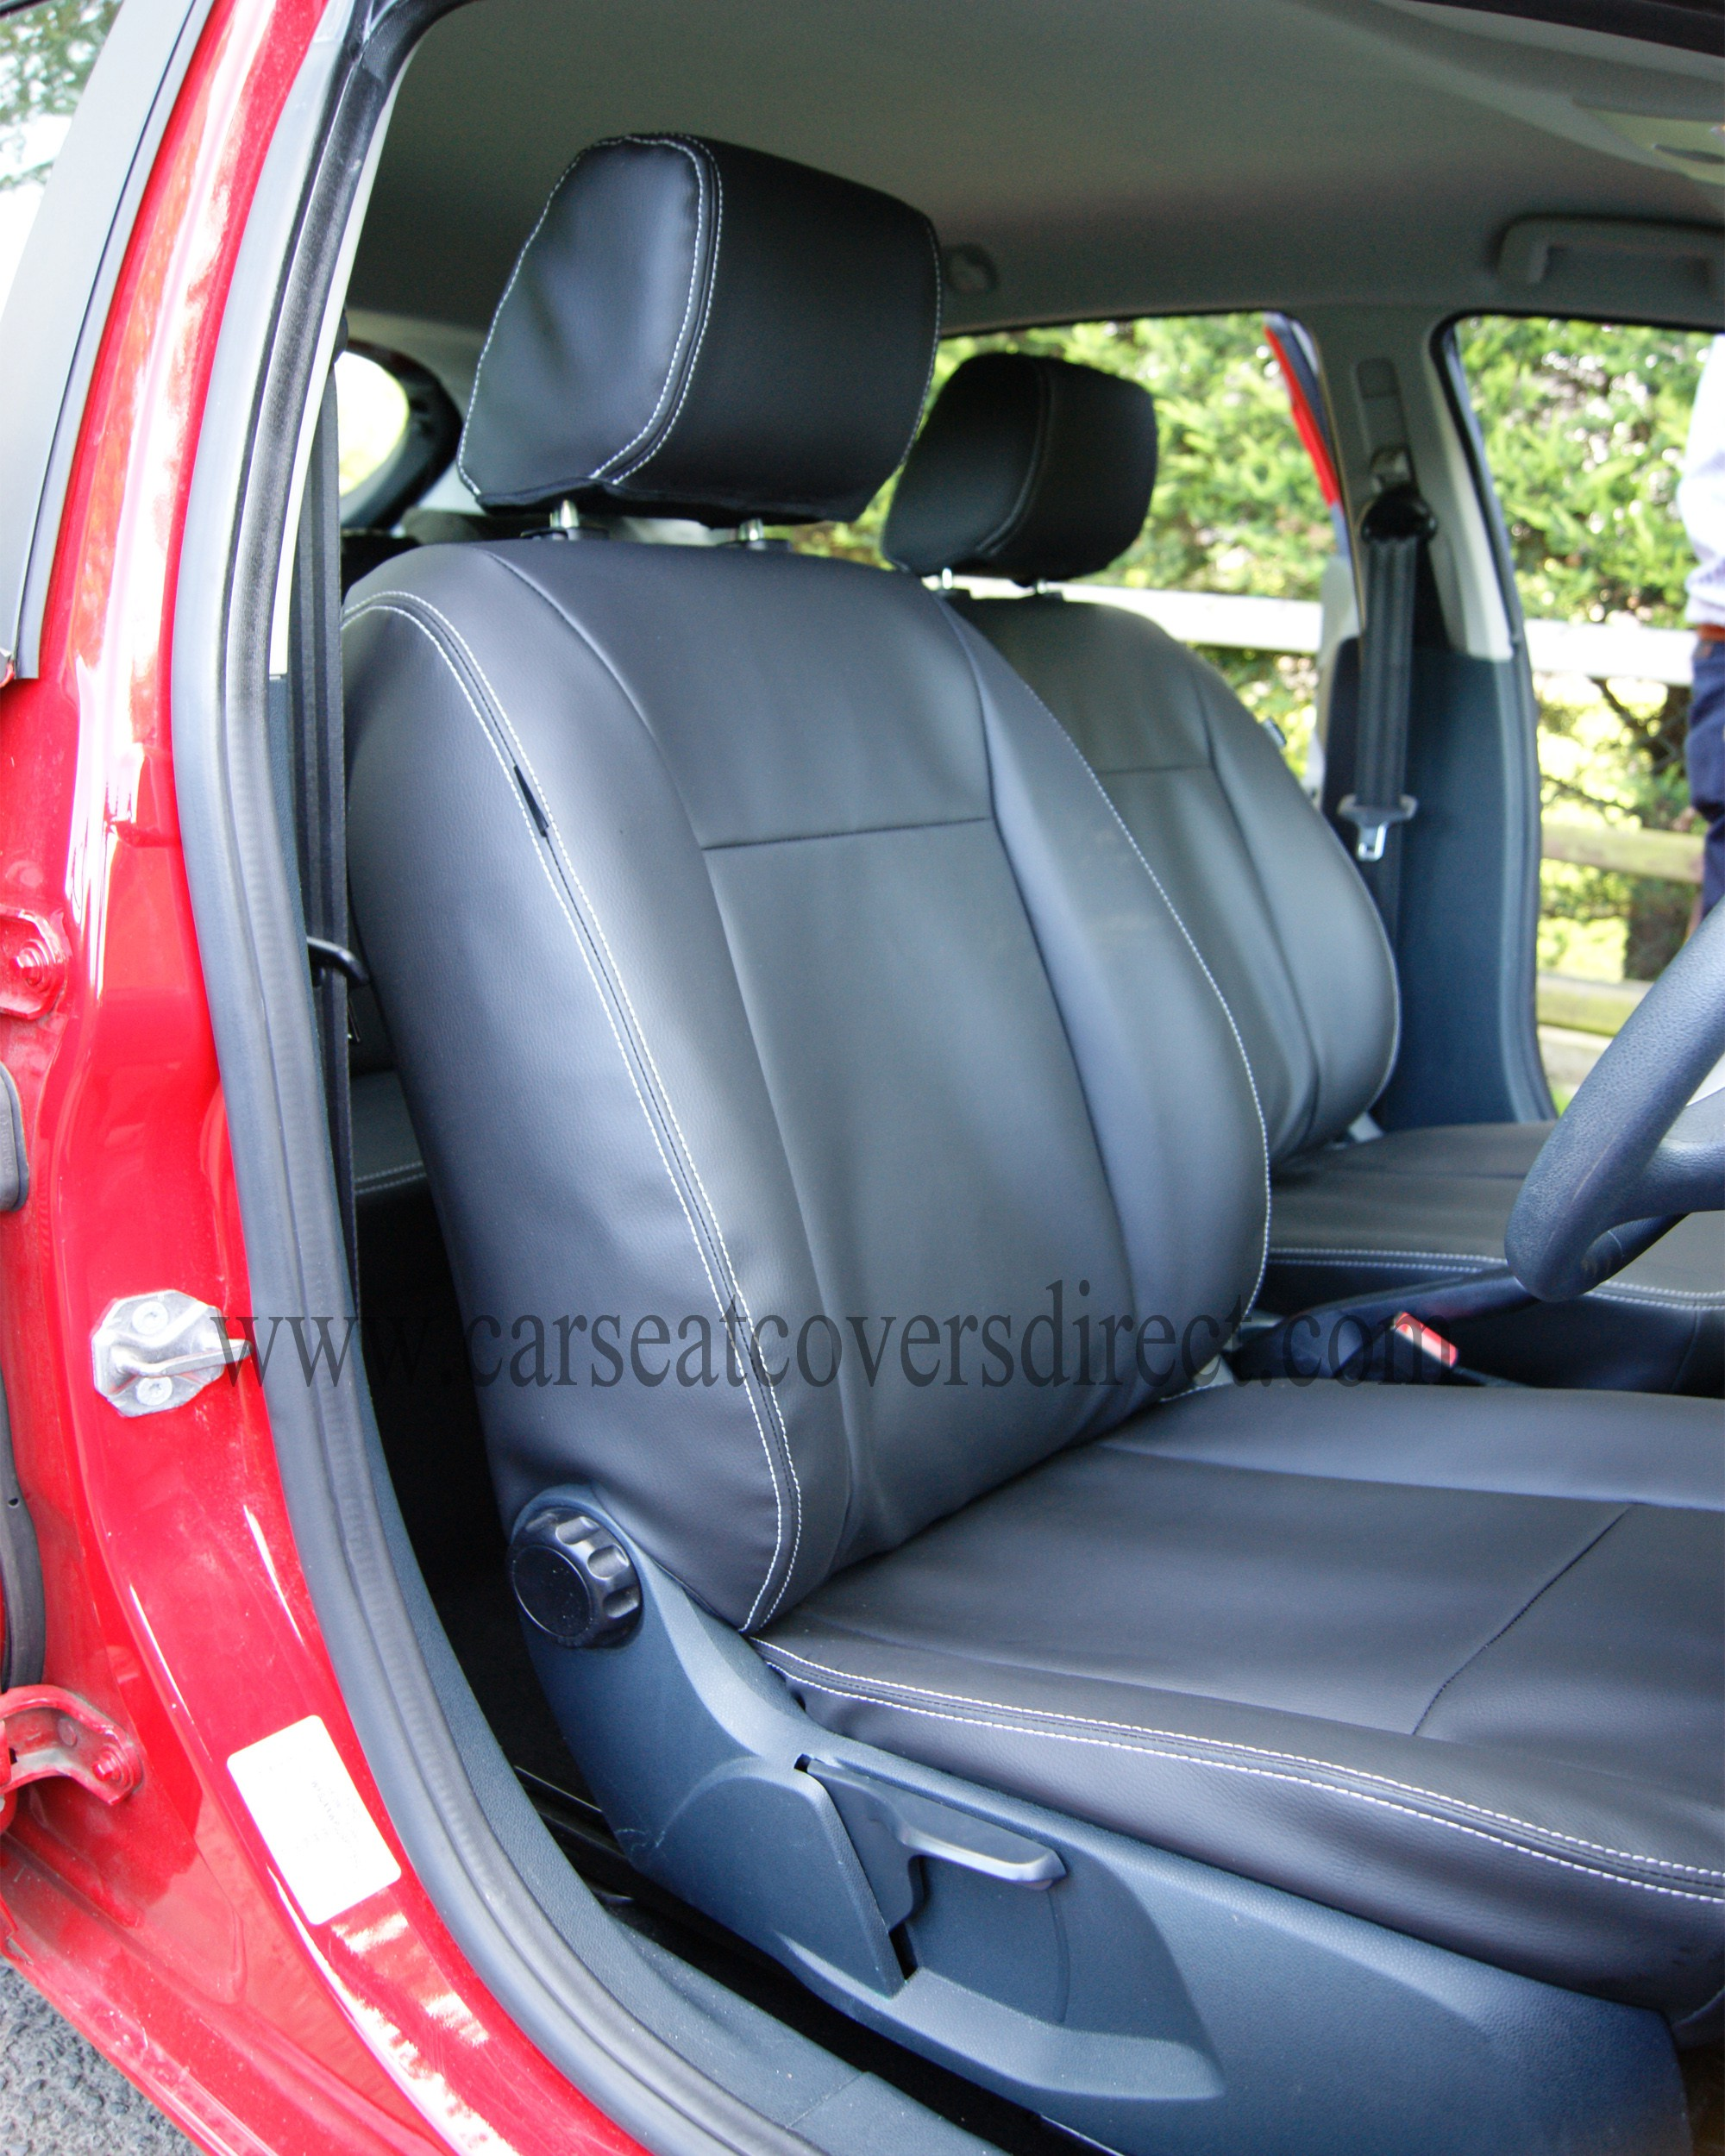 ford fiesta seat covers black leatherette car seat covers direct tailored to your choice. Black Bedroom Furniture Sets. Home Design Ideas